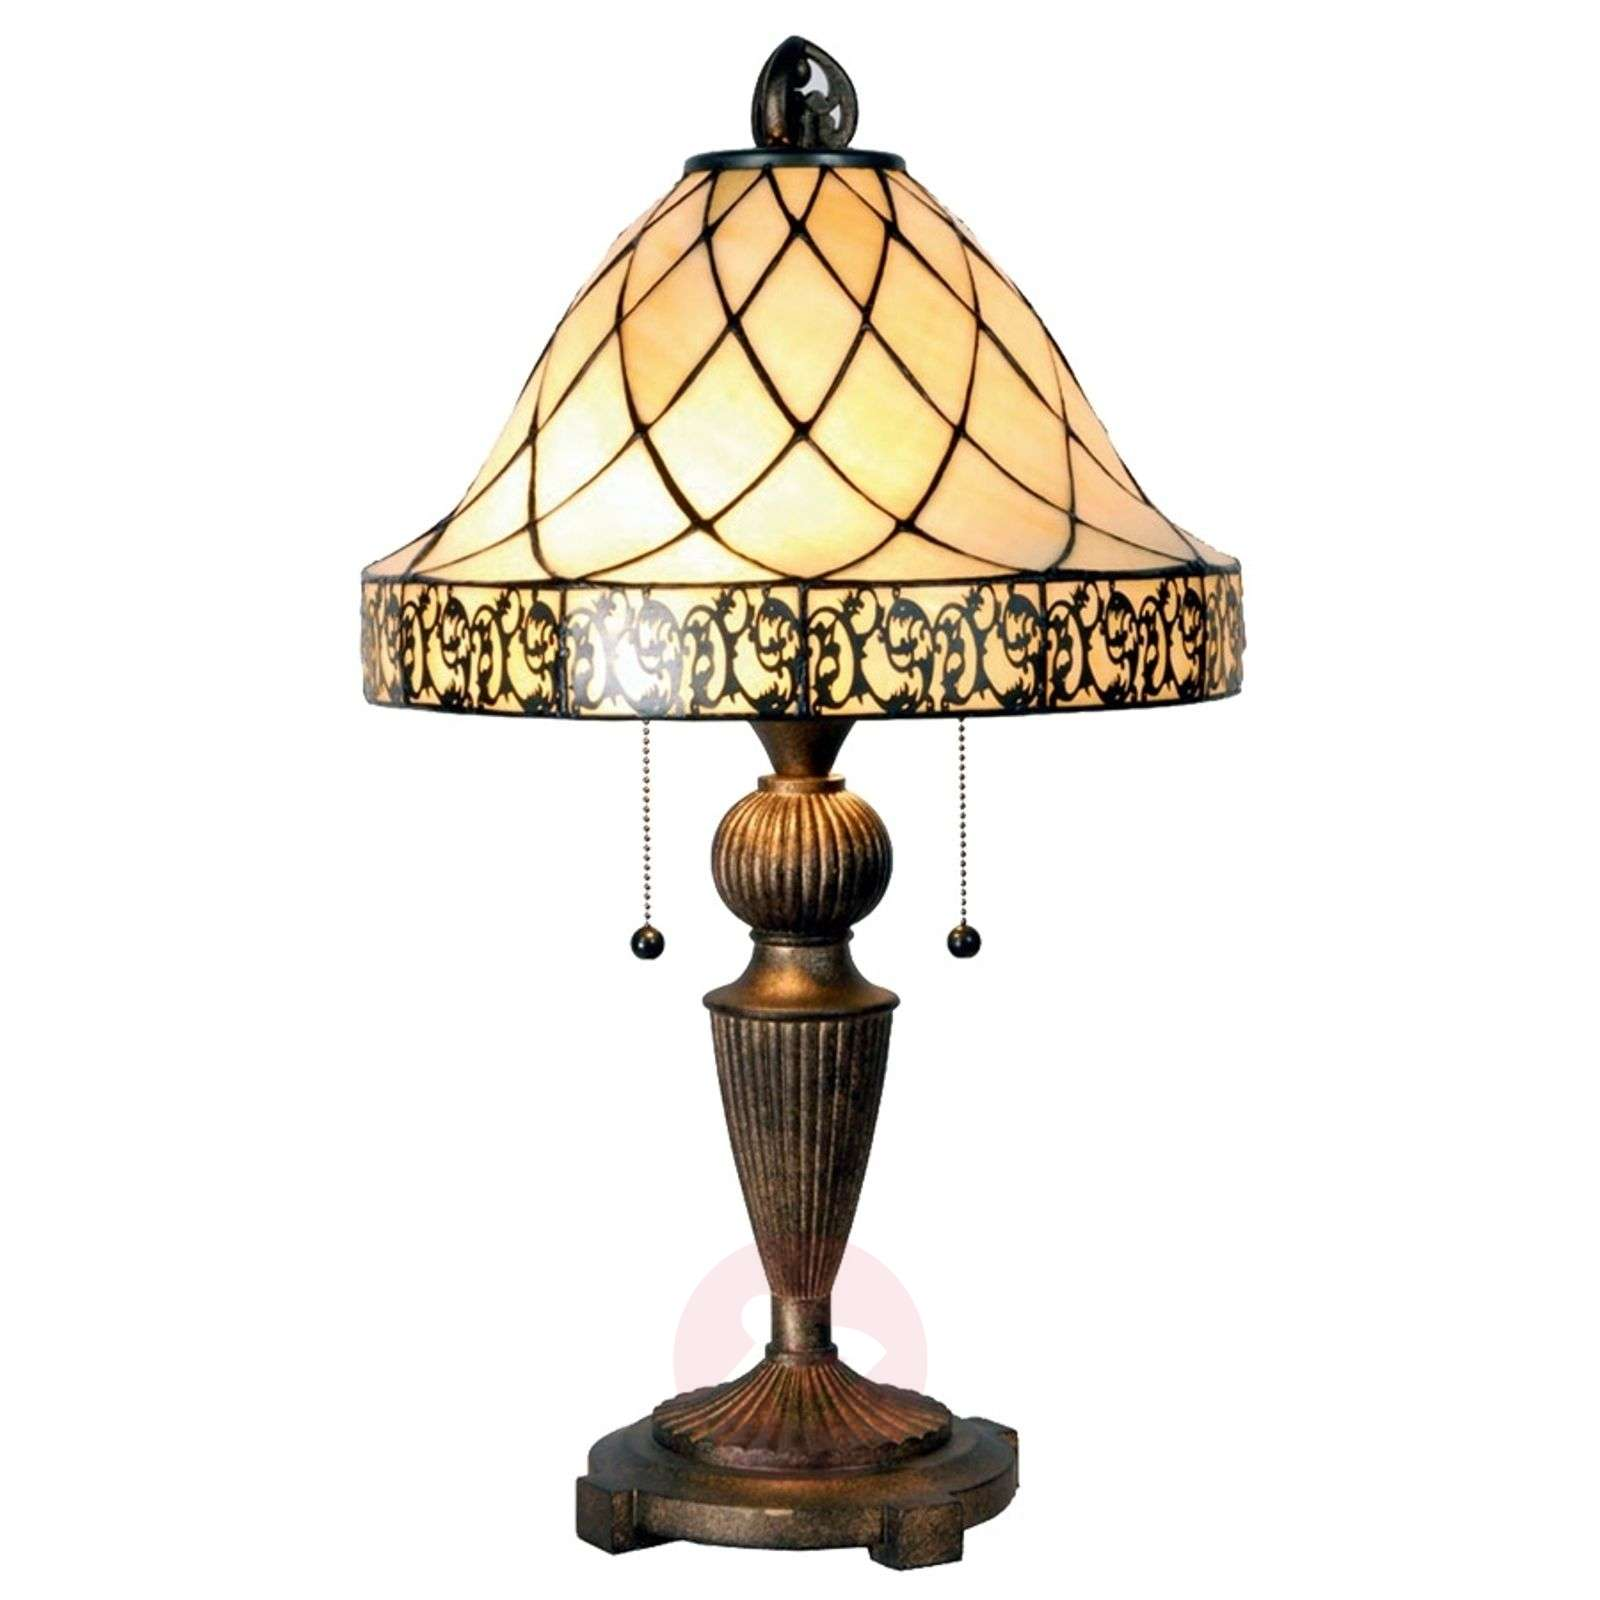 Table lamp Diamond in the Tiffany style 62cm-6064045-01